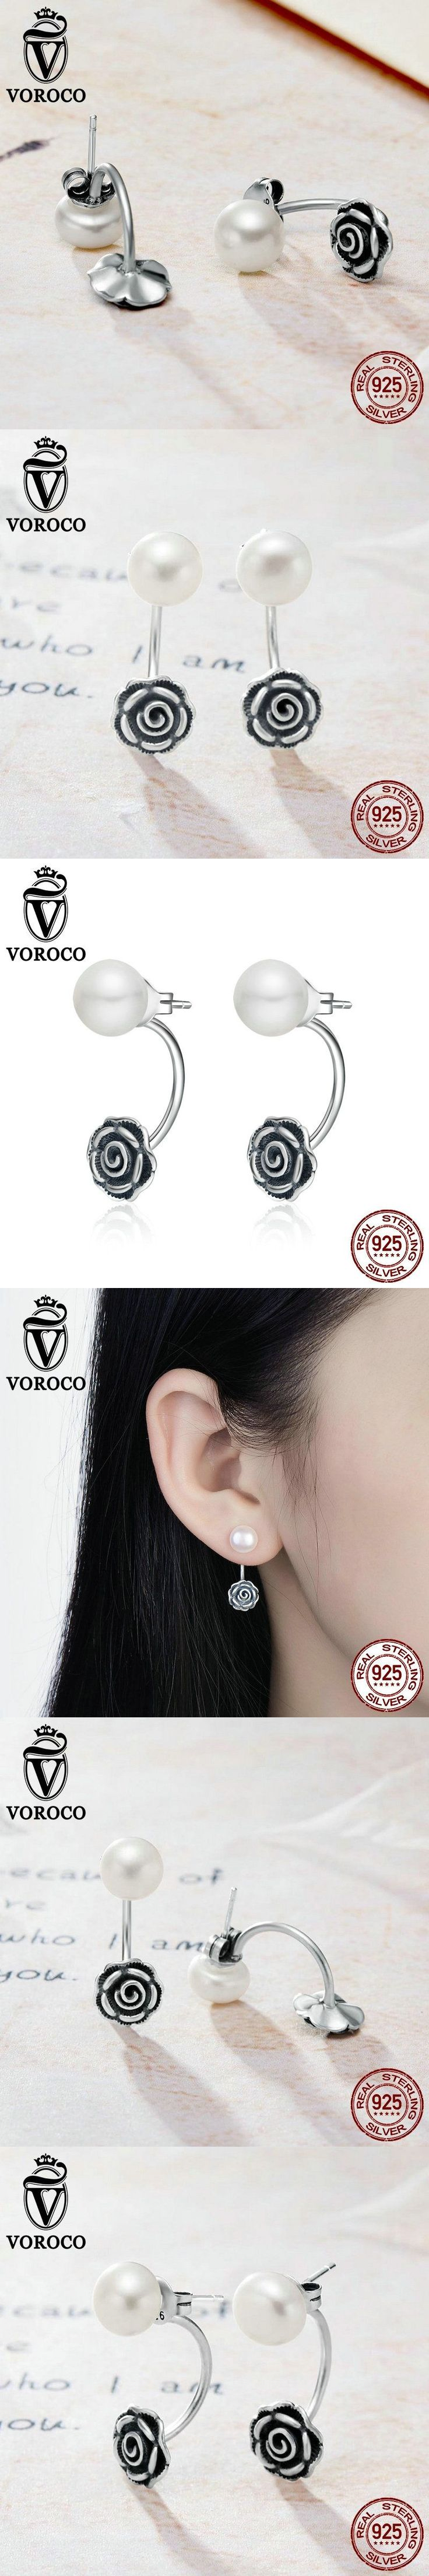 VOROCO 925 Sterling Silver Fashion Genuine Dazzling Flower Pearl Stud Earrings Women Fine Jewelry Brincos VSE025 #pearlstudearrings